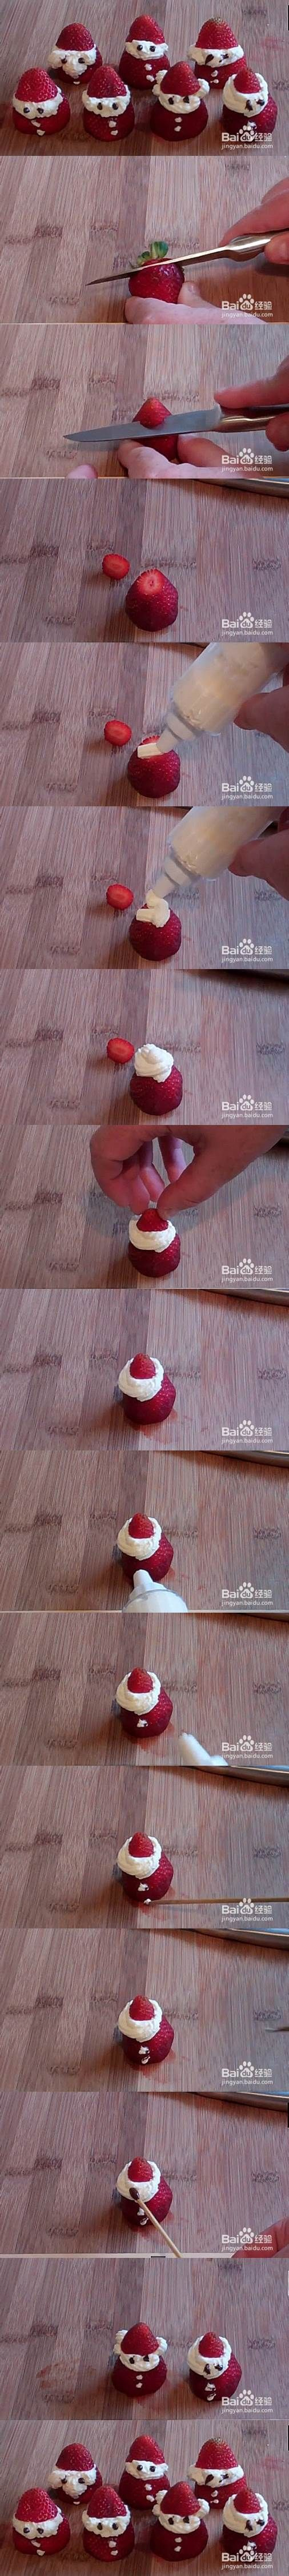 DIY Straberry Santa Claus 2